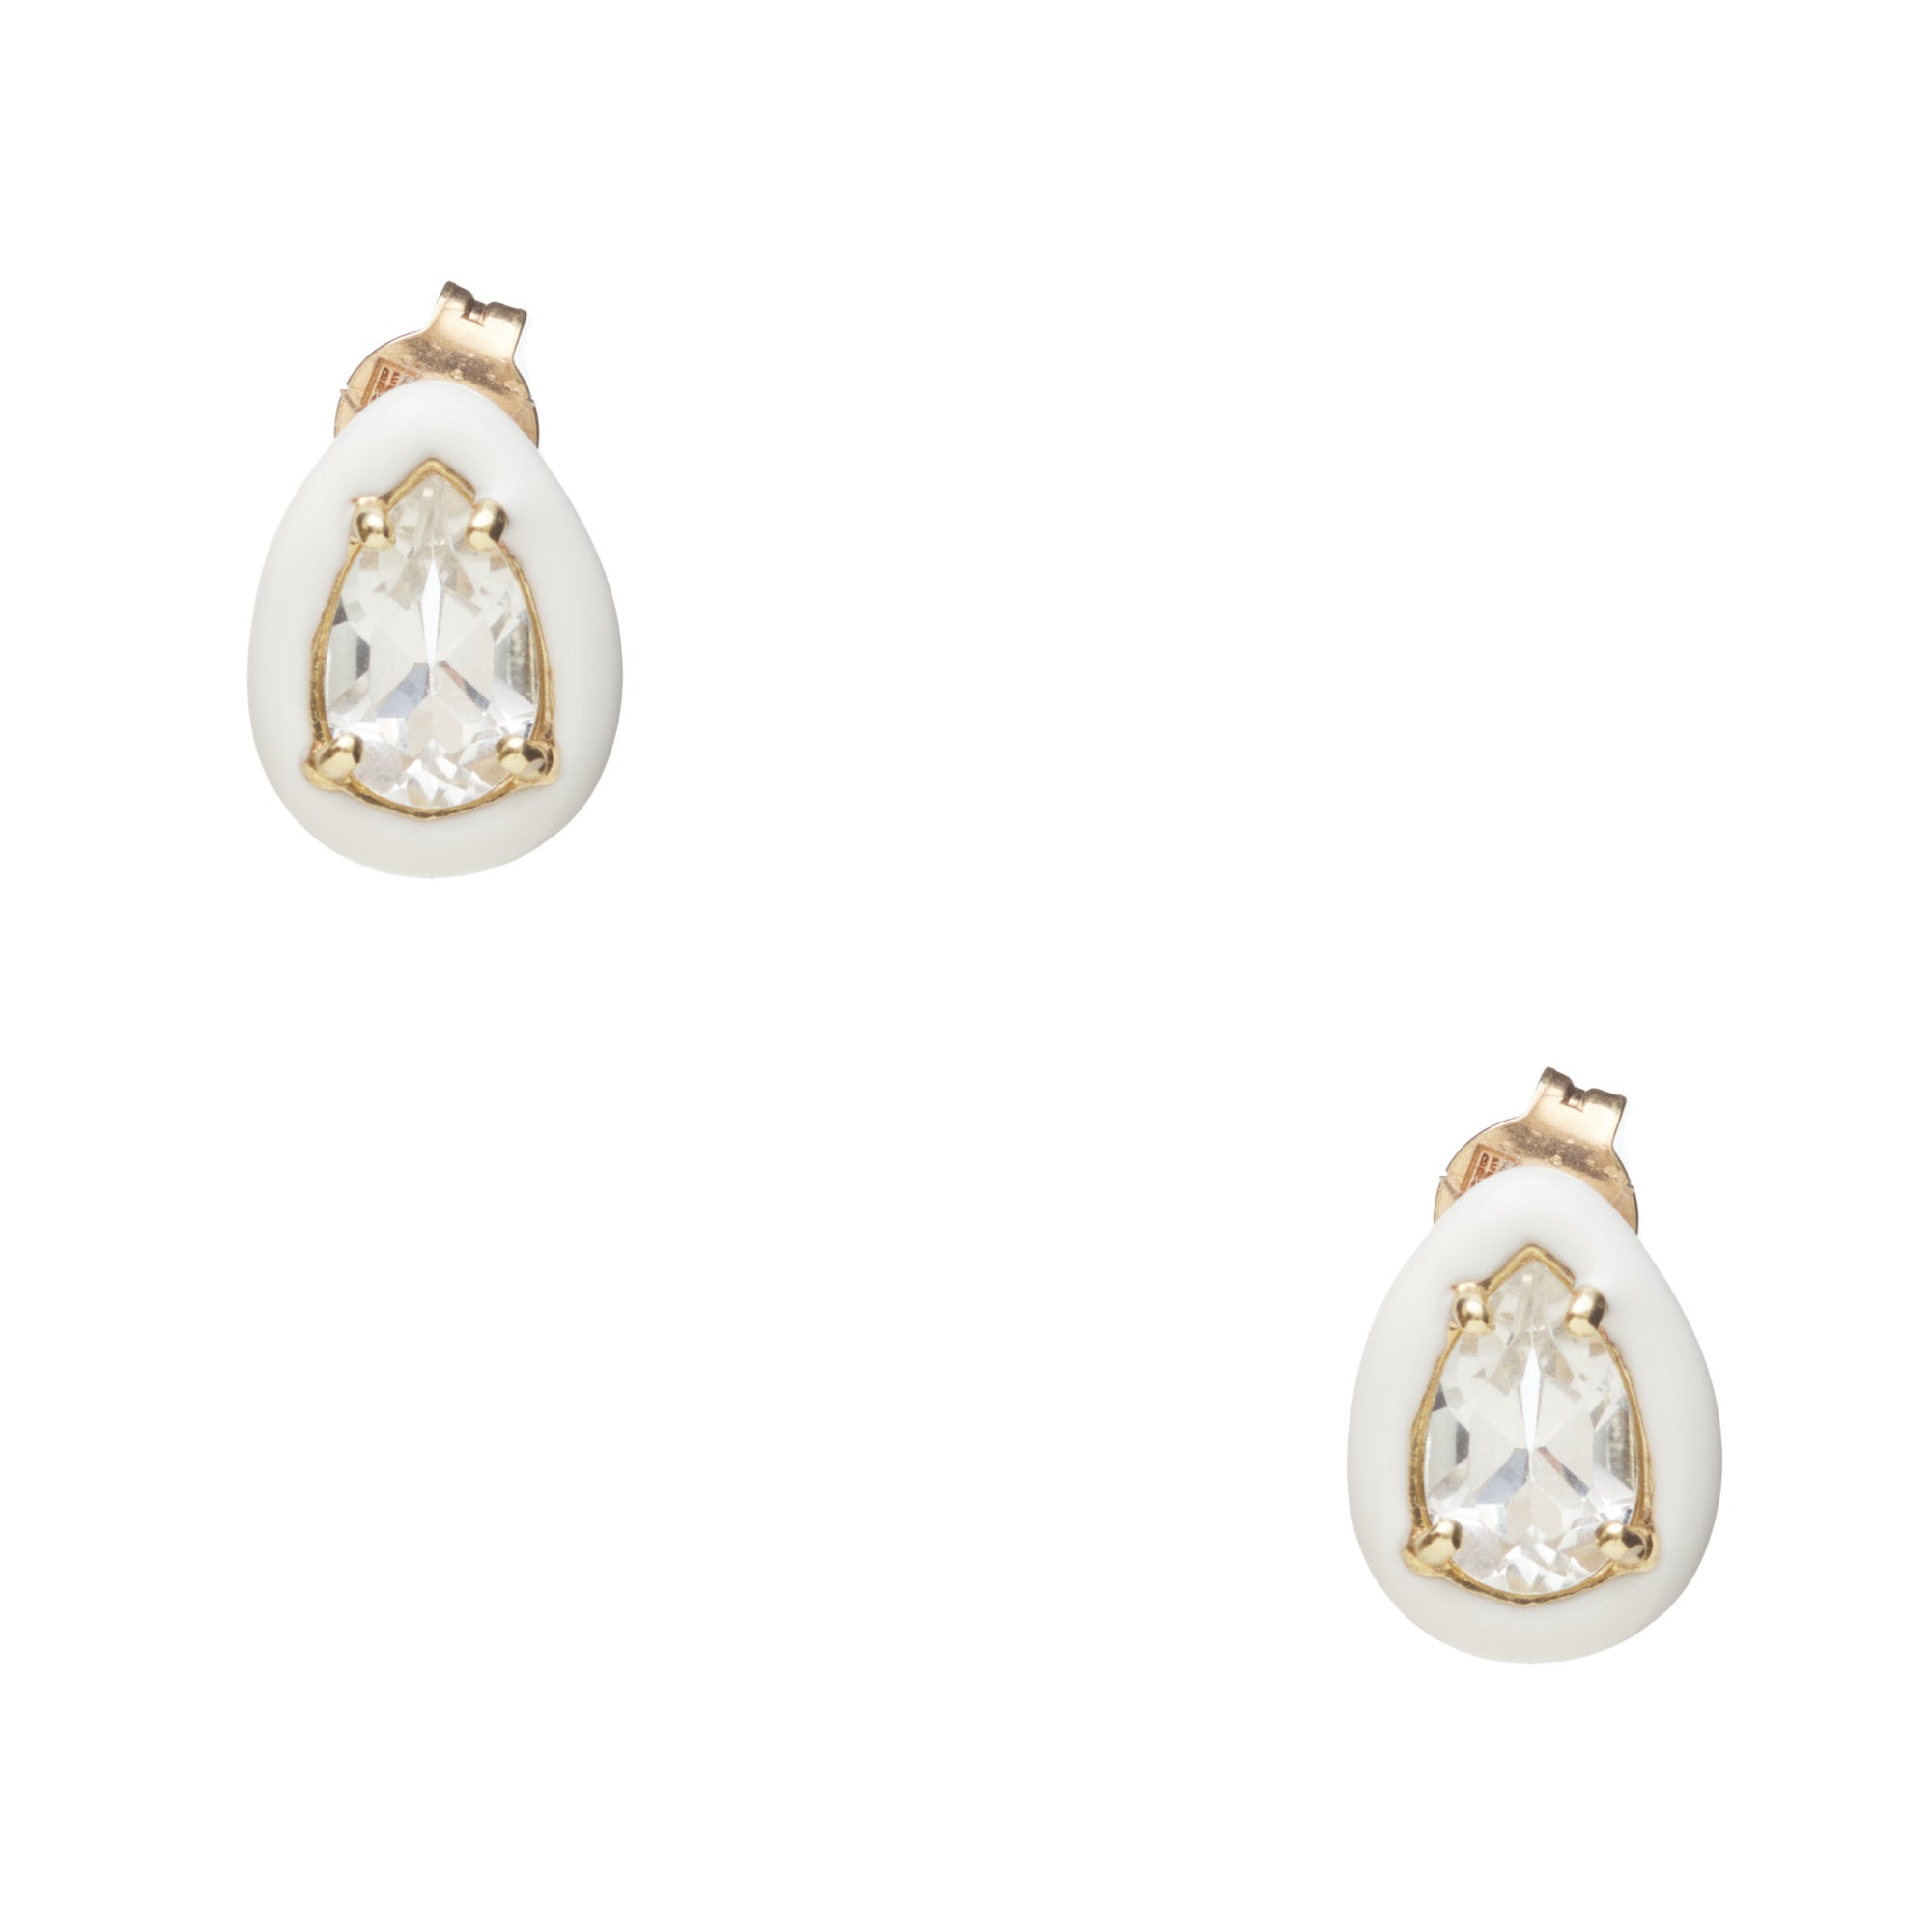 Bea Bongiasca White Gumdrop Stud Earrings